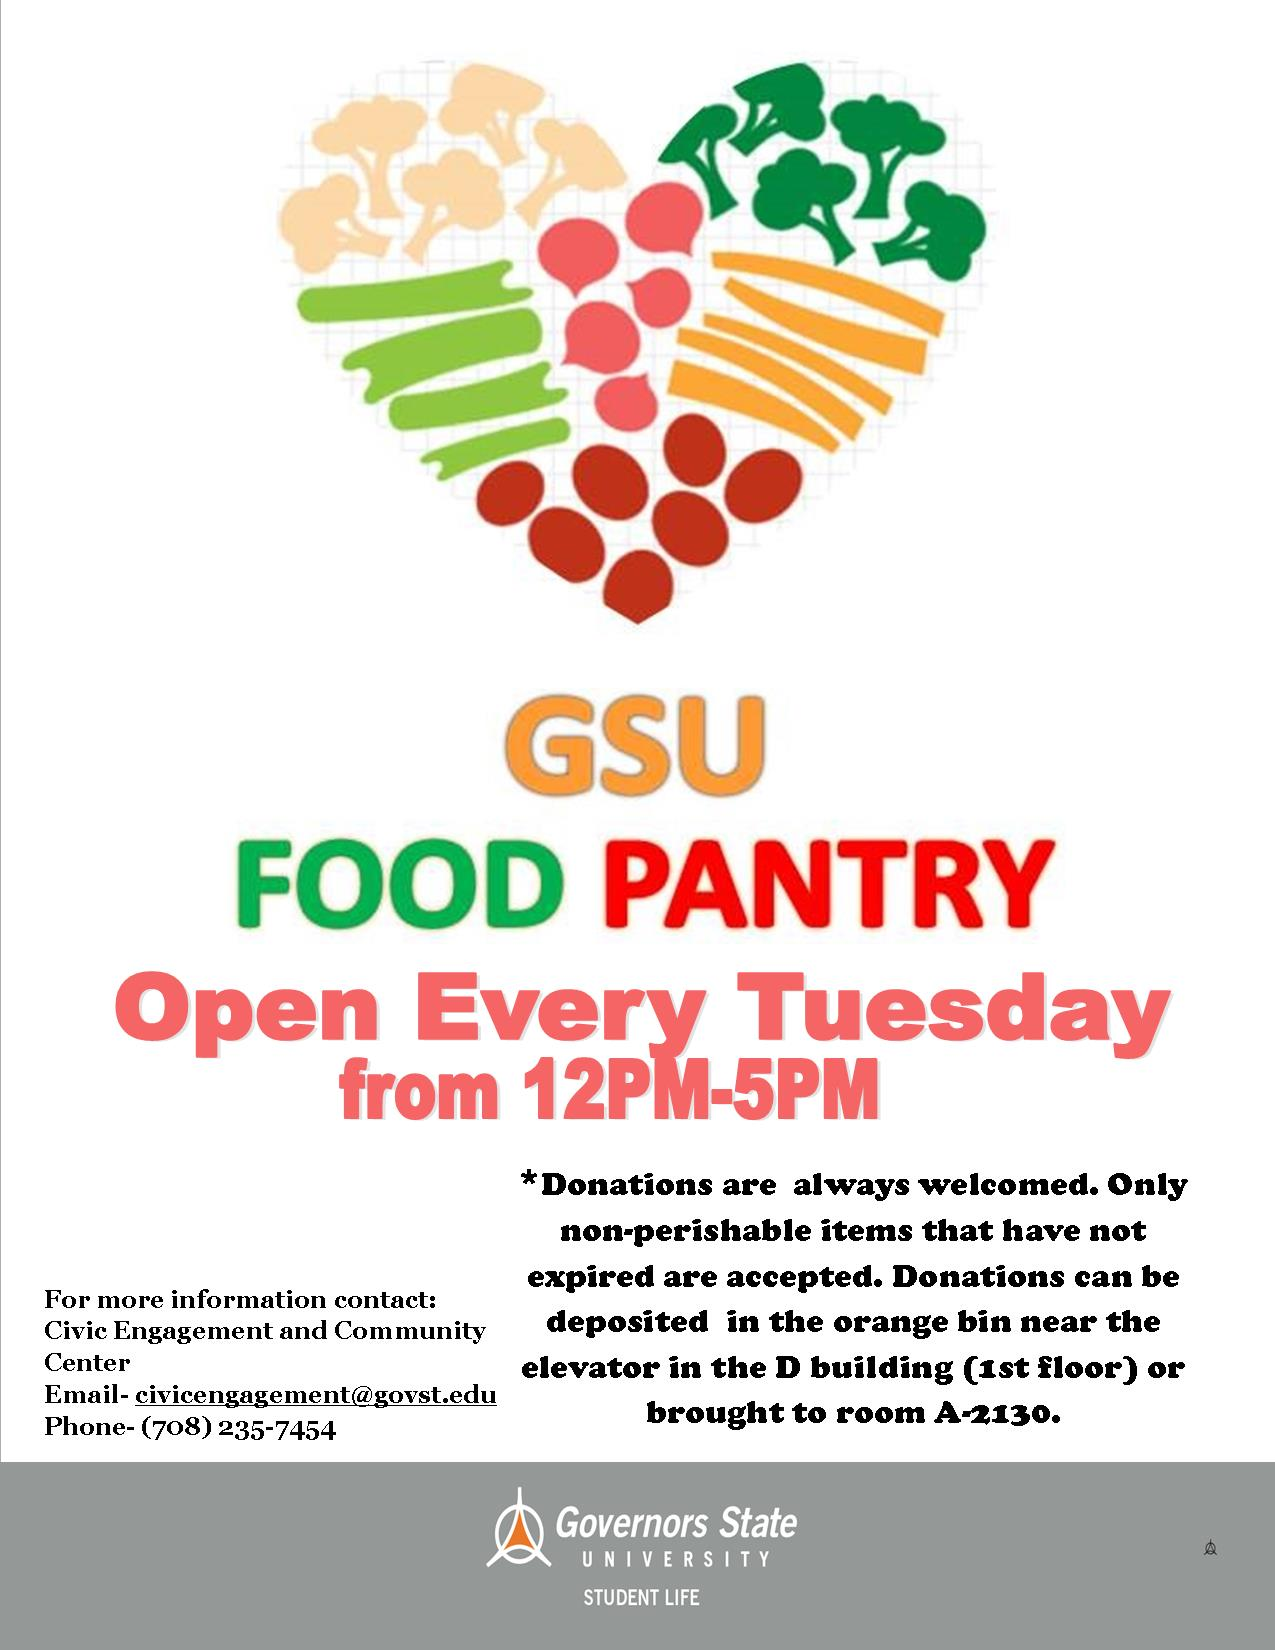 Food Pantry Flyer 2015